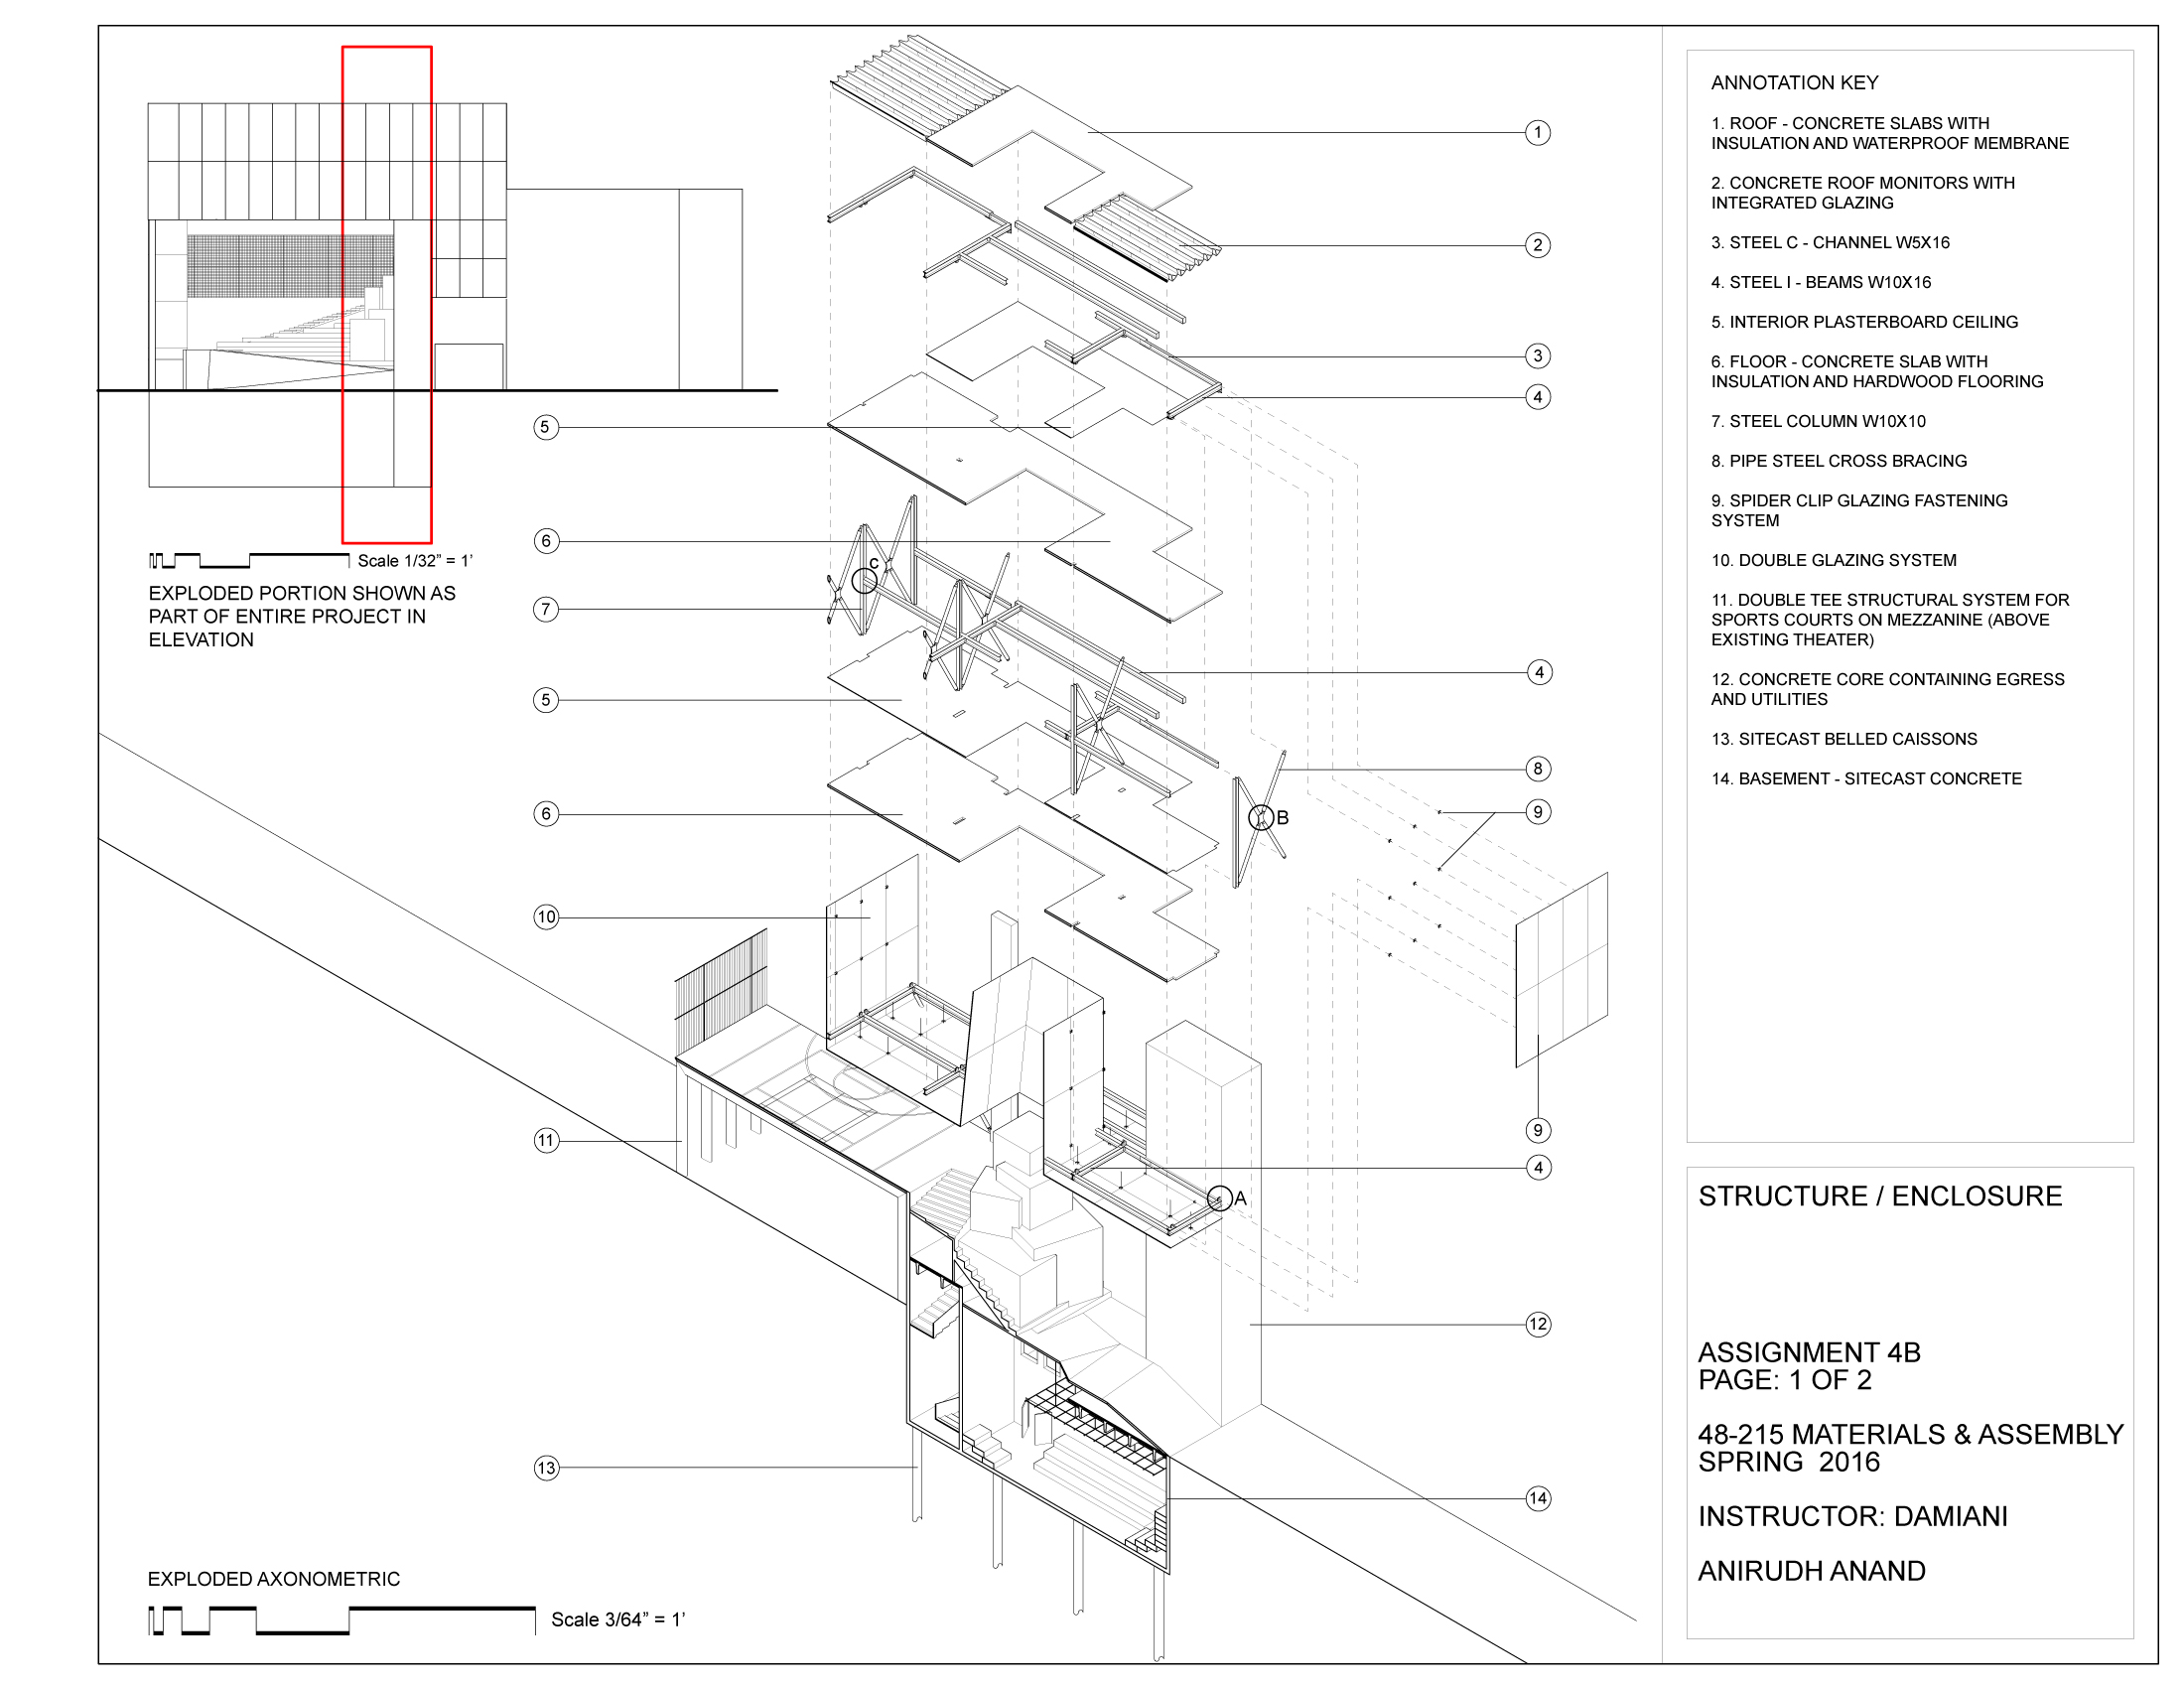 Materials and Assembly Structure / Enclosure Specifications 1 (clisk to enlarge)